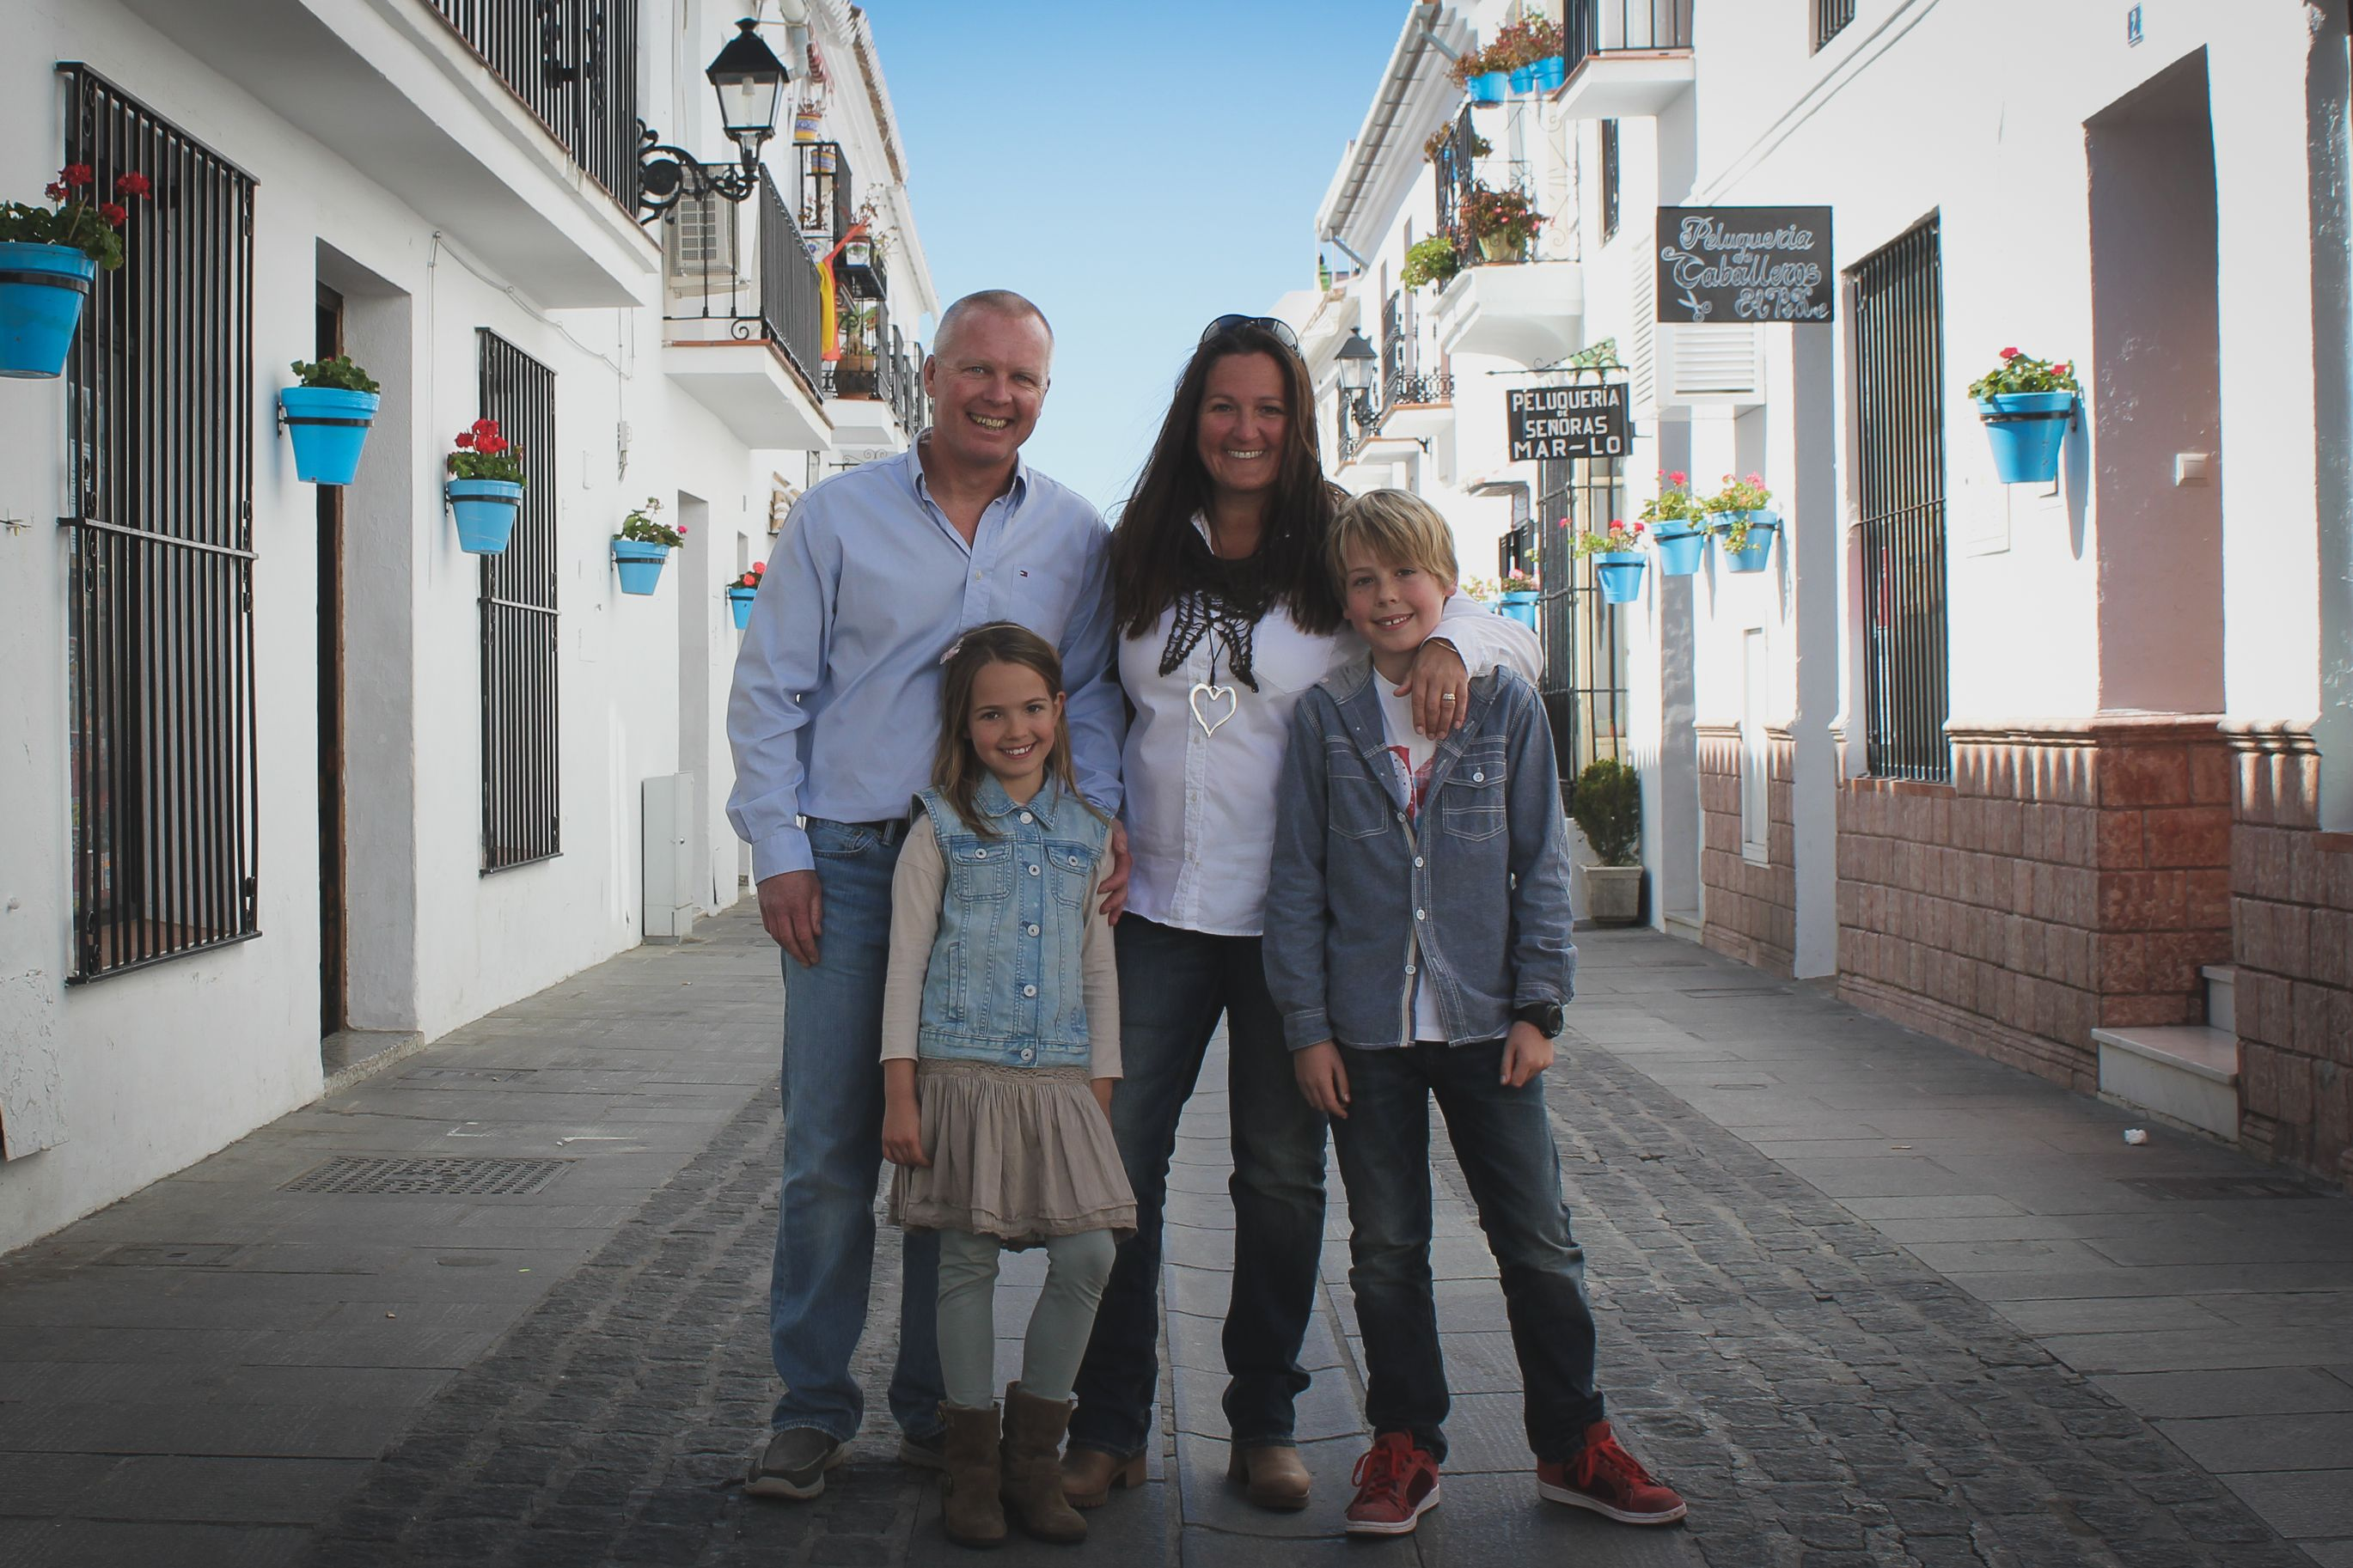 'Moving To Spain With Children' By Lisa Sadleir, A Review